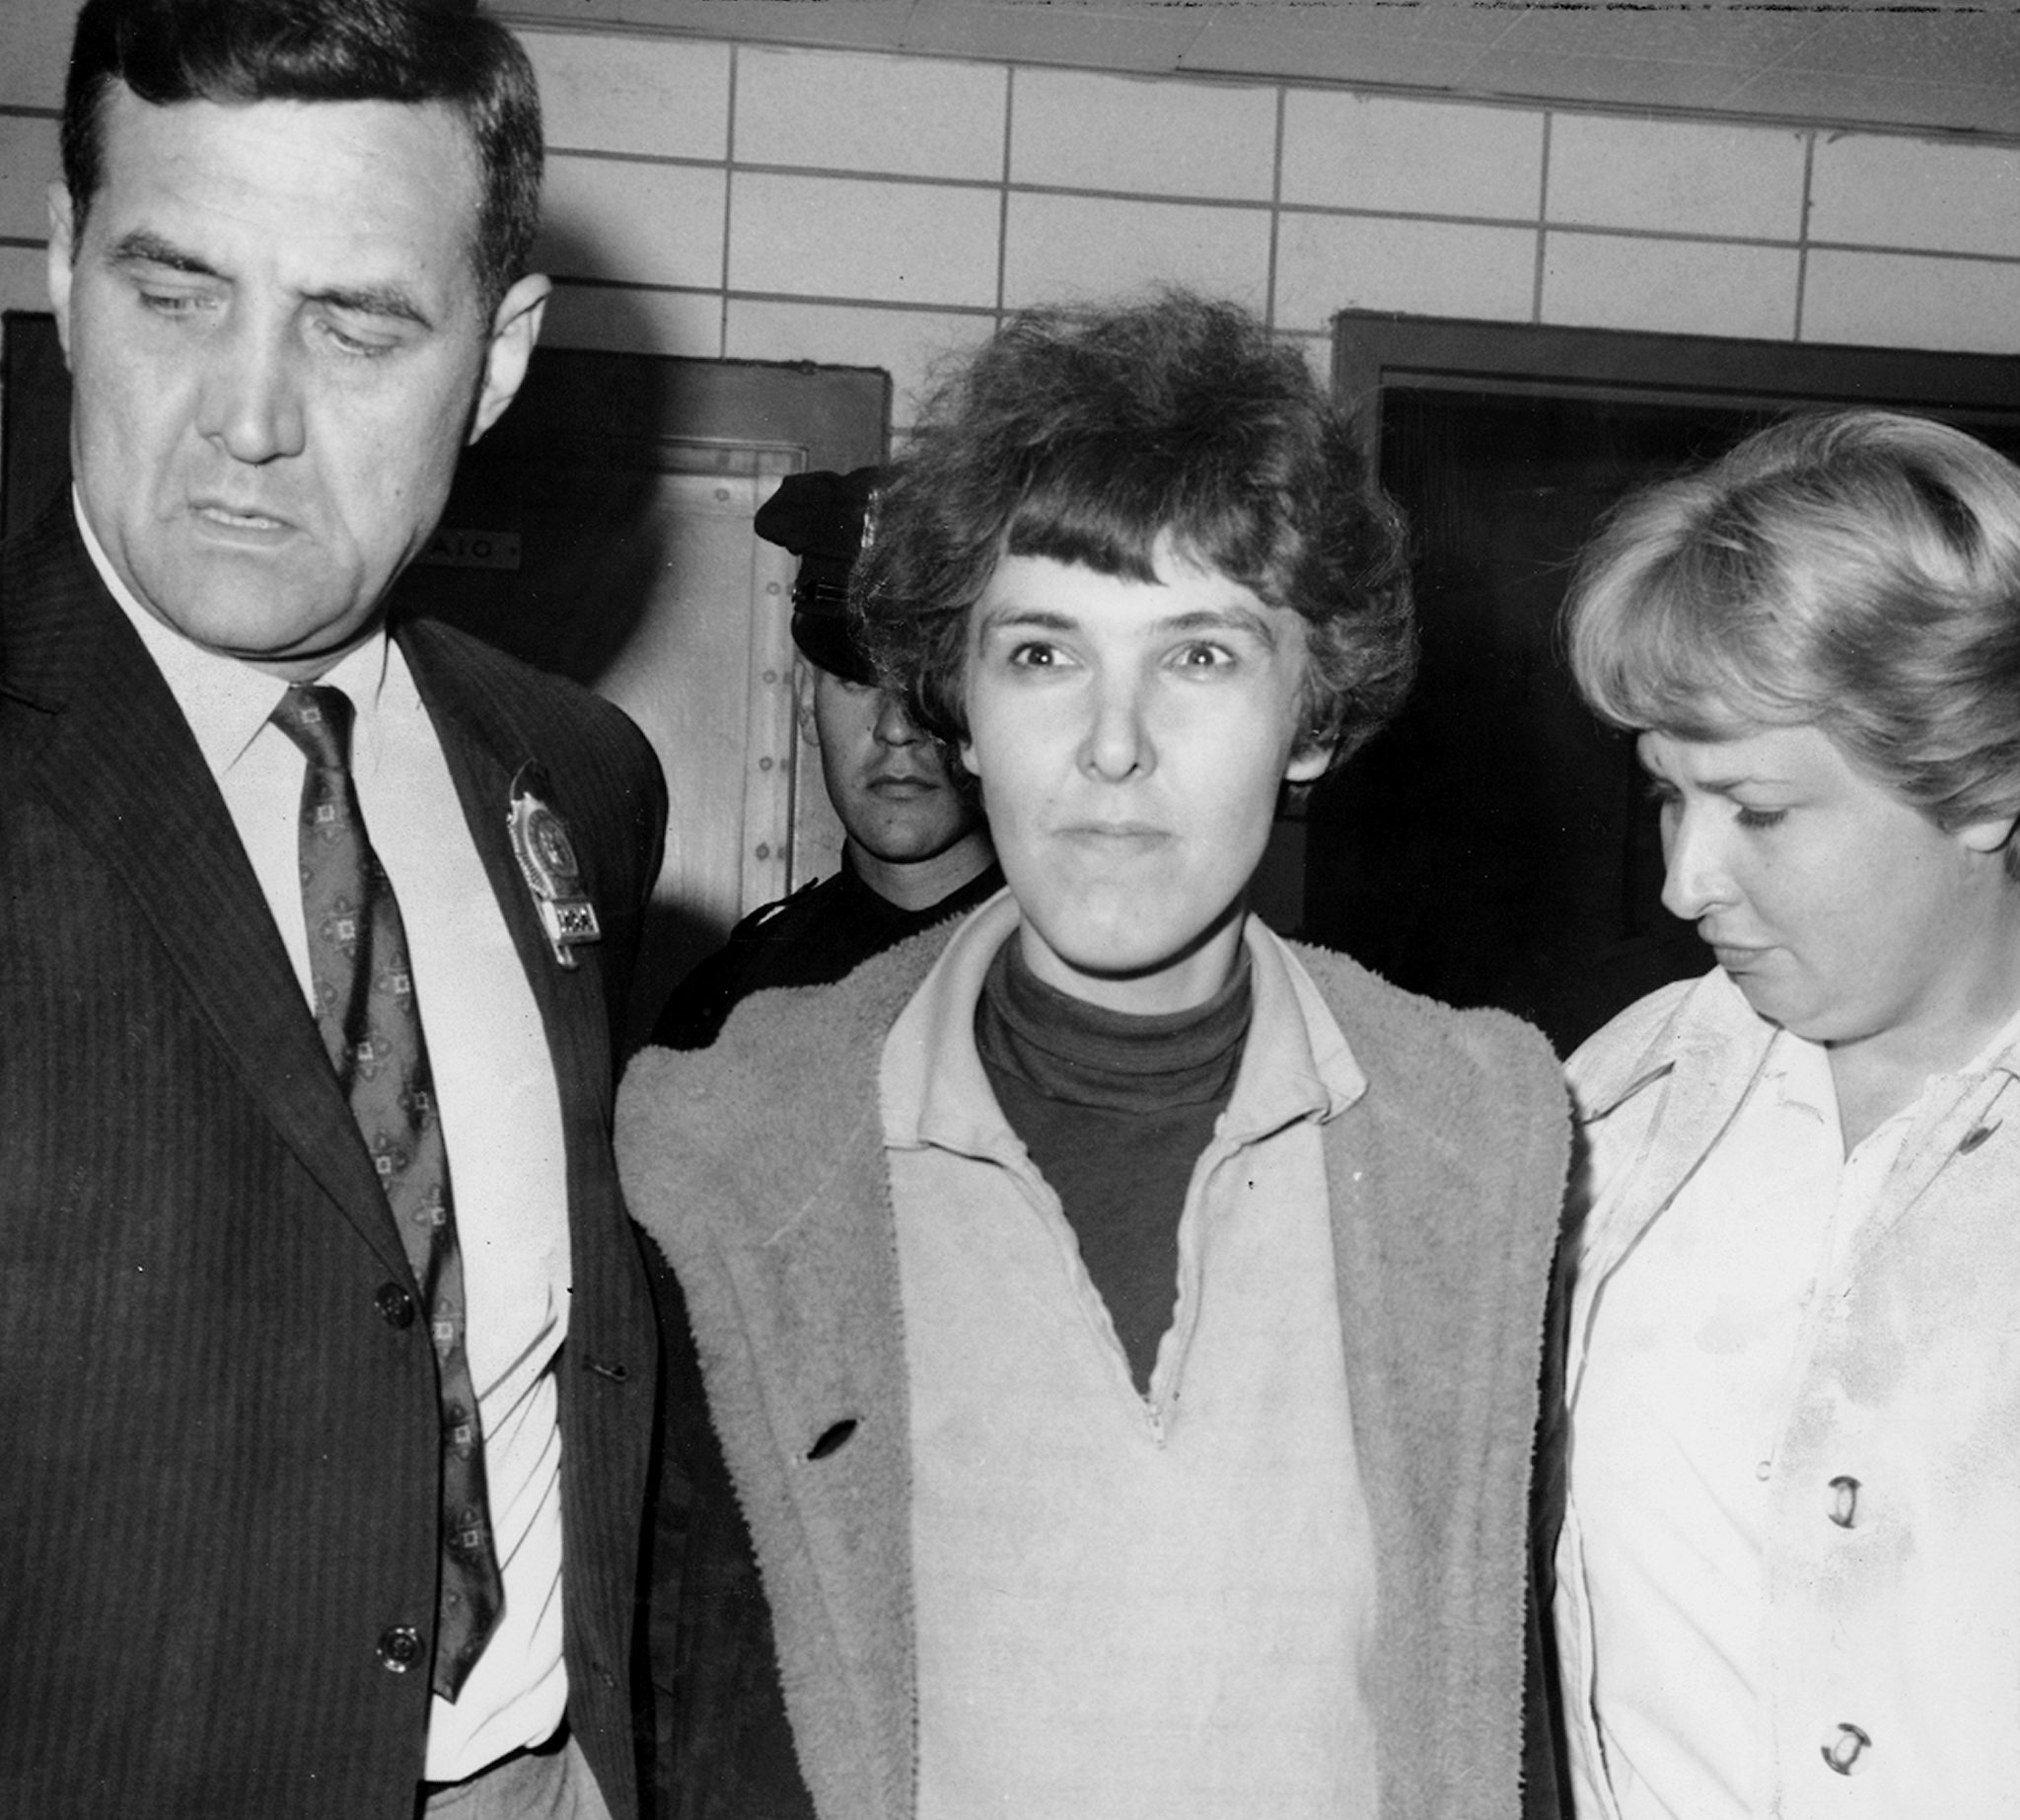 Detective Frederick Stepat and policewoman McCarthy escort Valeria Solanas, 28, into 13th precinct, for the shooting of Andy Warhol, on June 3, 1968, in New York City